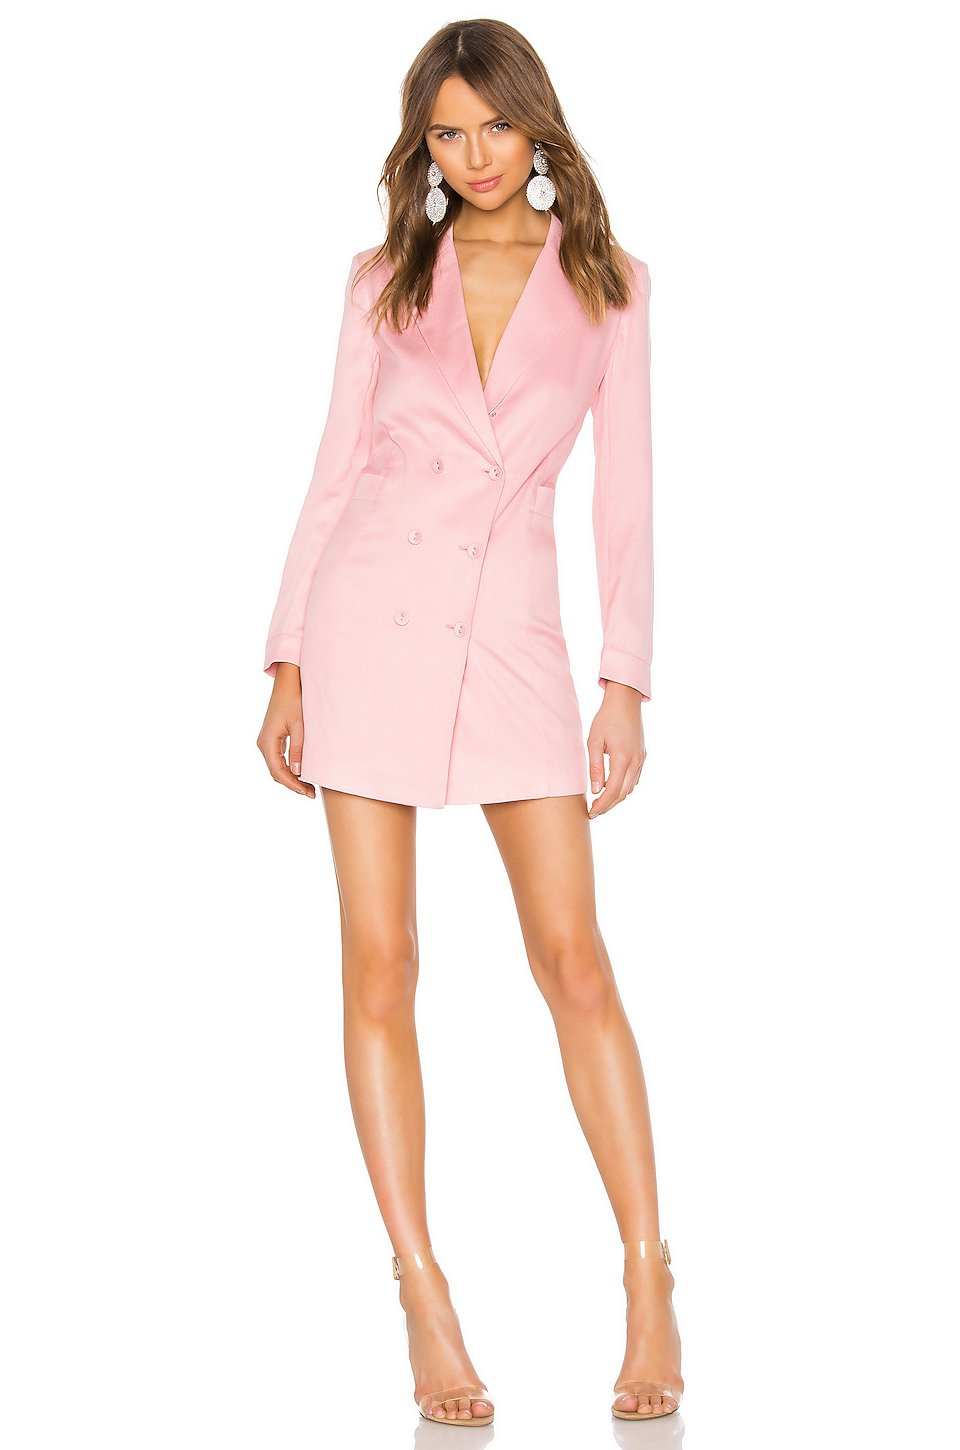 Double Breasted Blazer Dress in Coral Blush